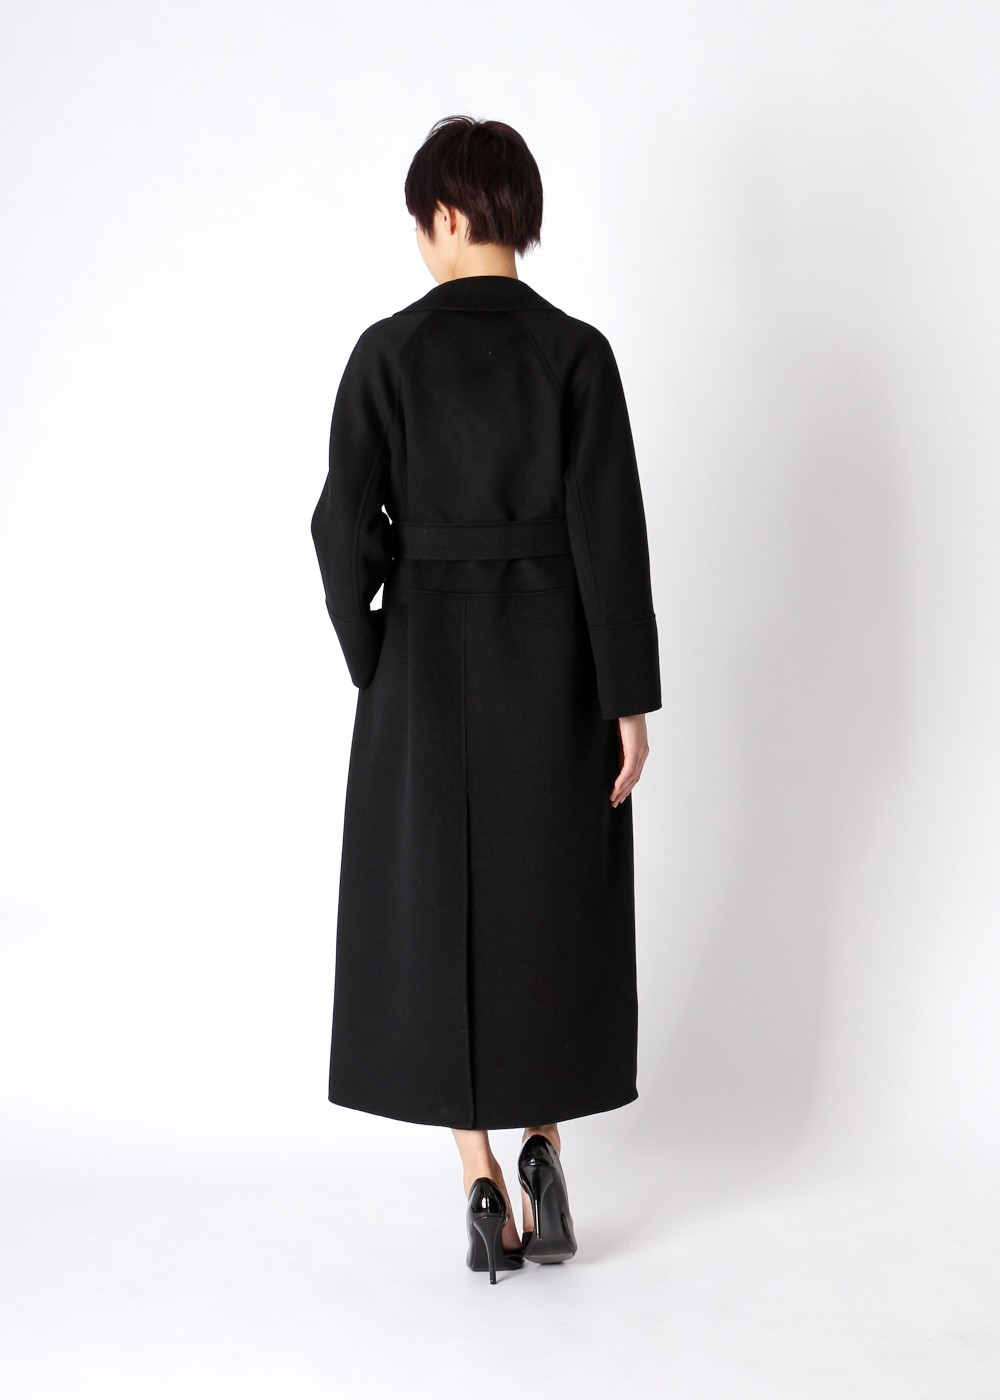 【最大50%OFF】ARONALU-COAT【S Max Mara】|NERO|その他コート|Max Mara